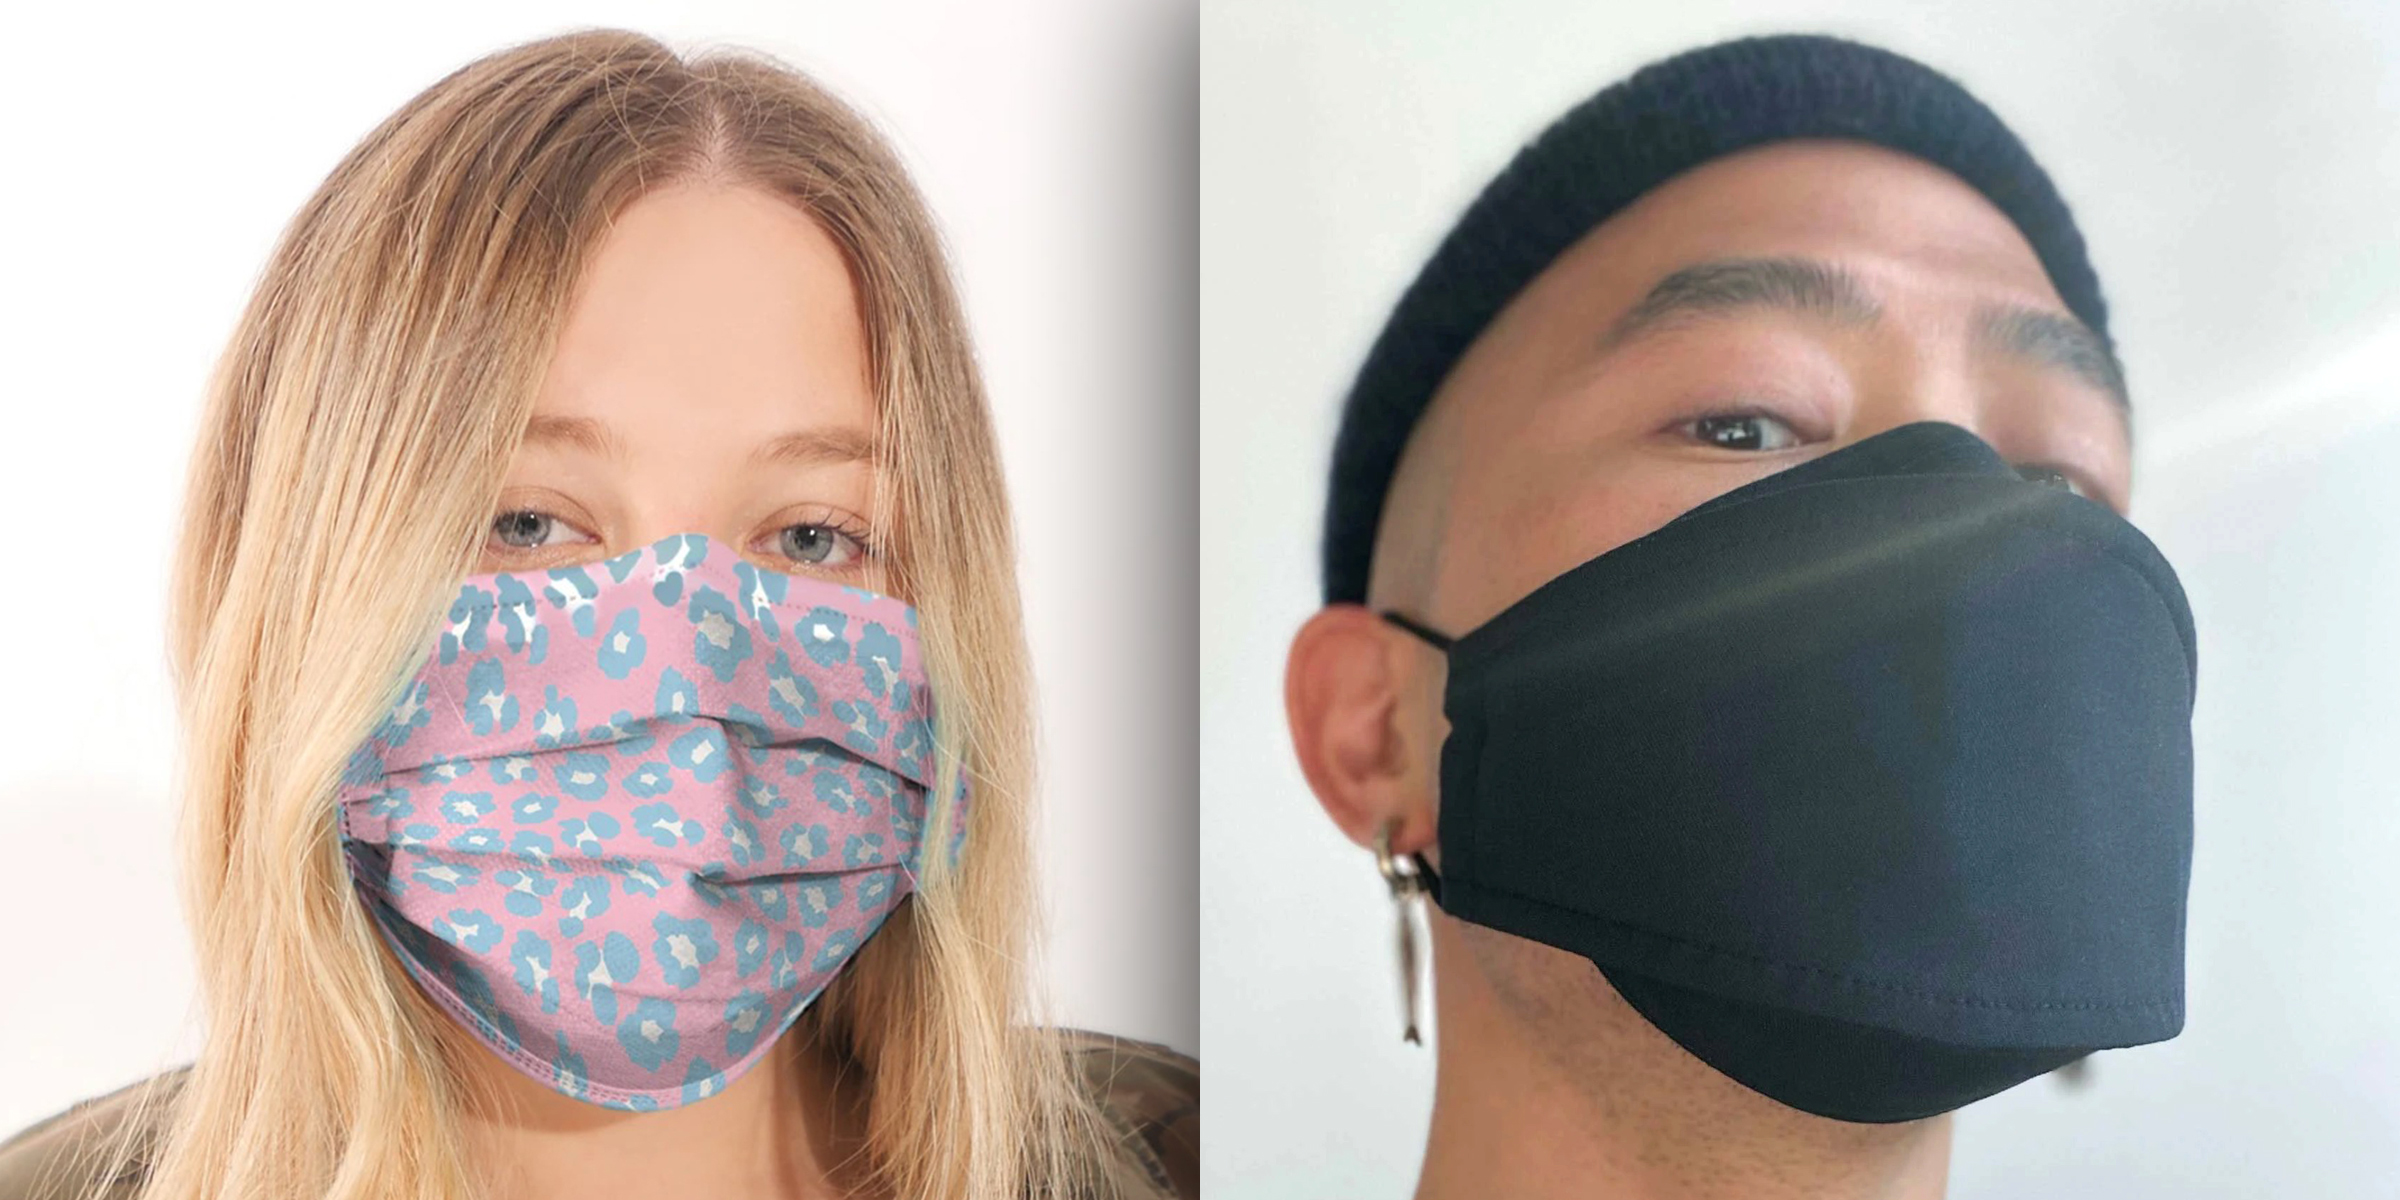 Where to buy face masks for yourself and others